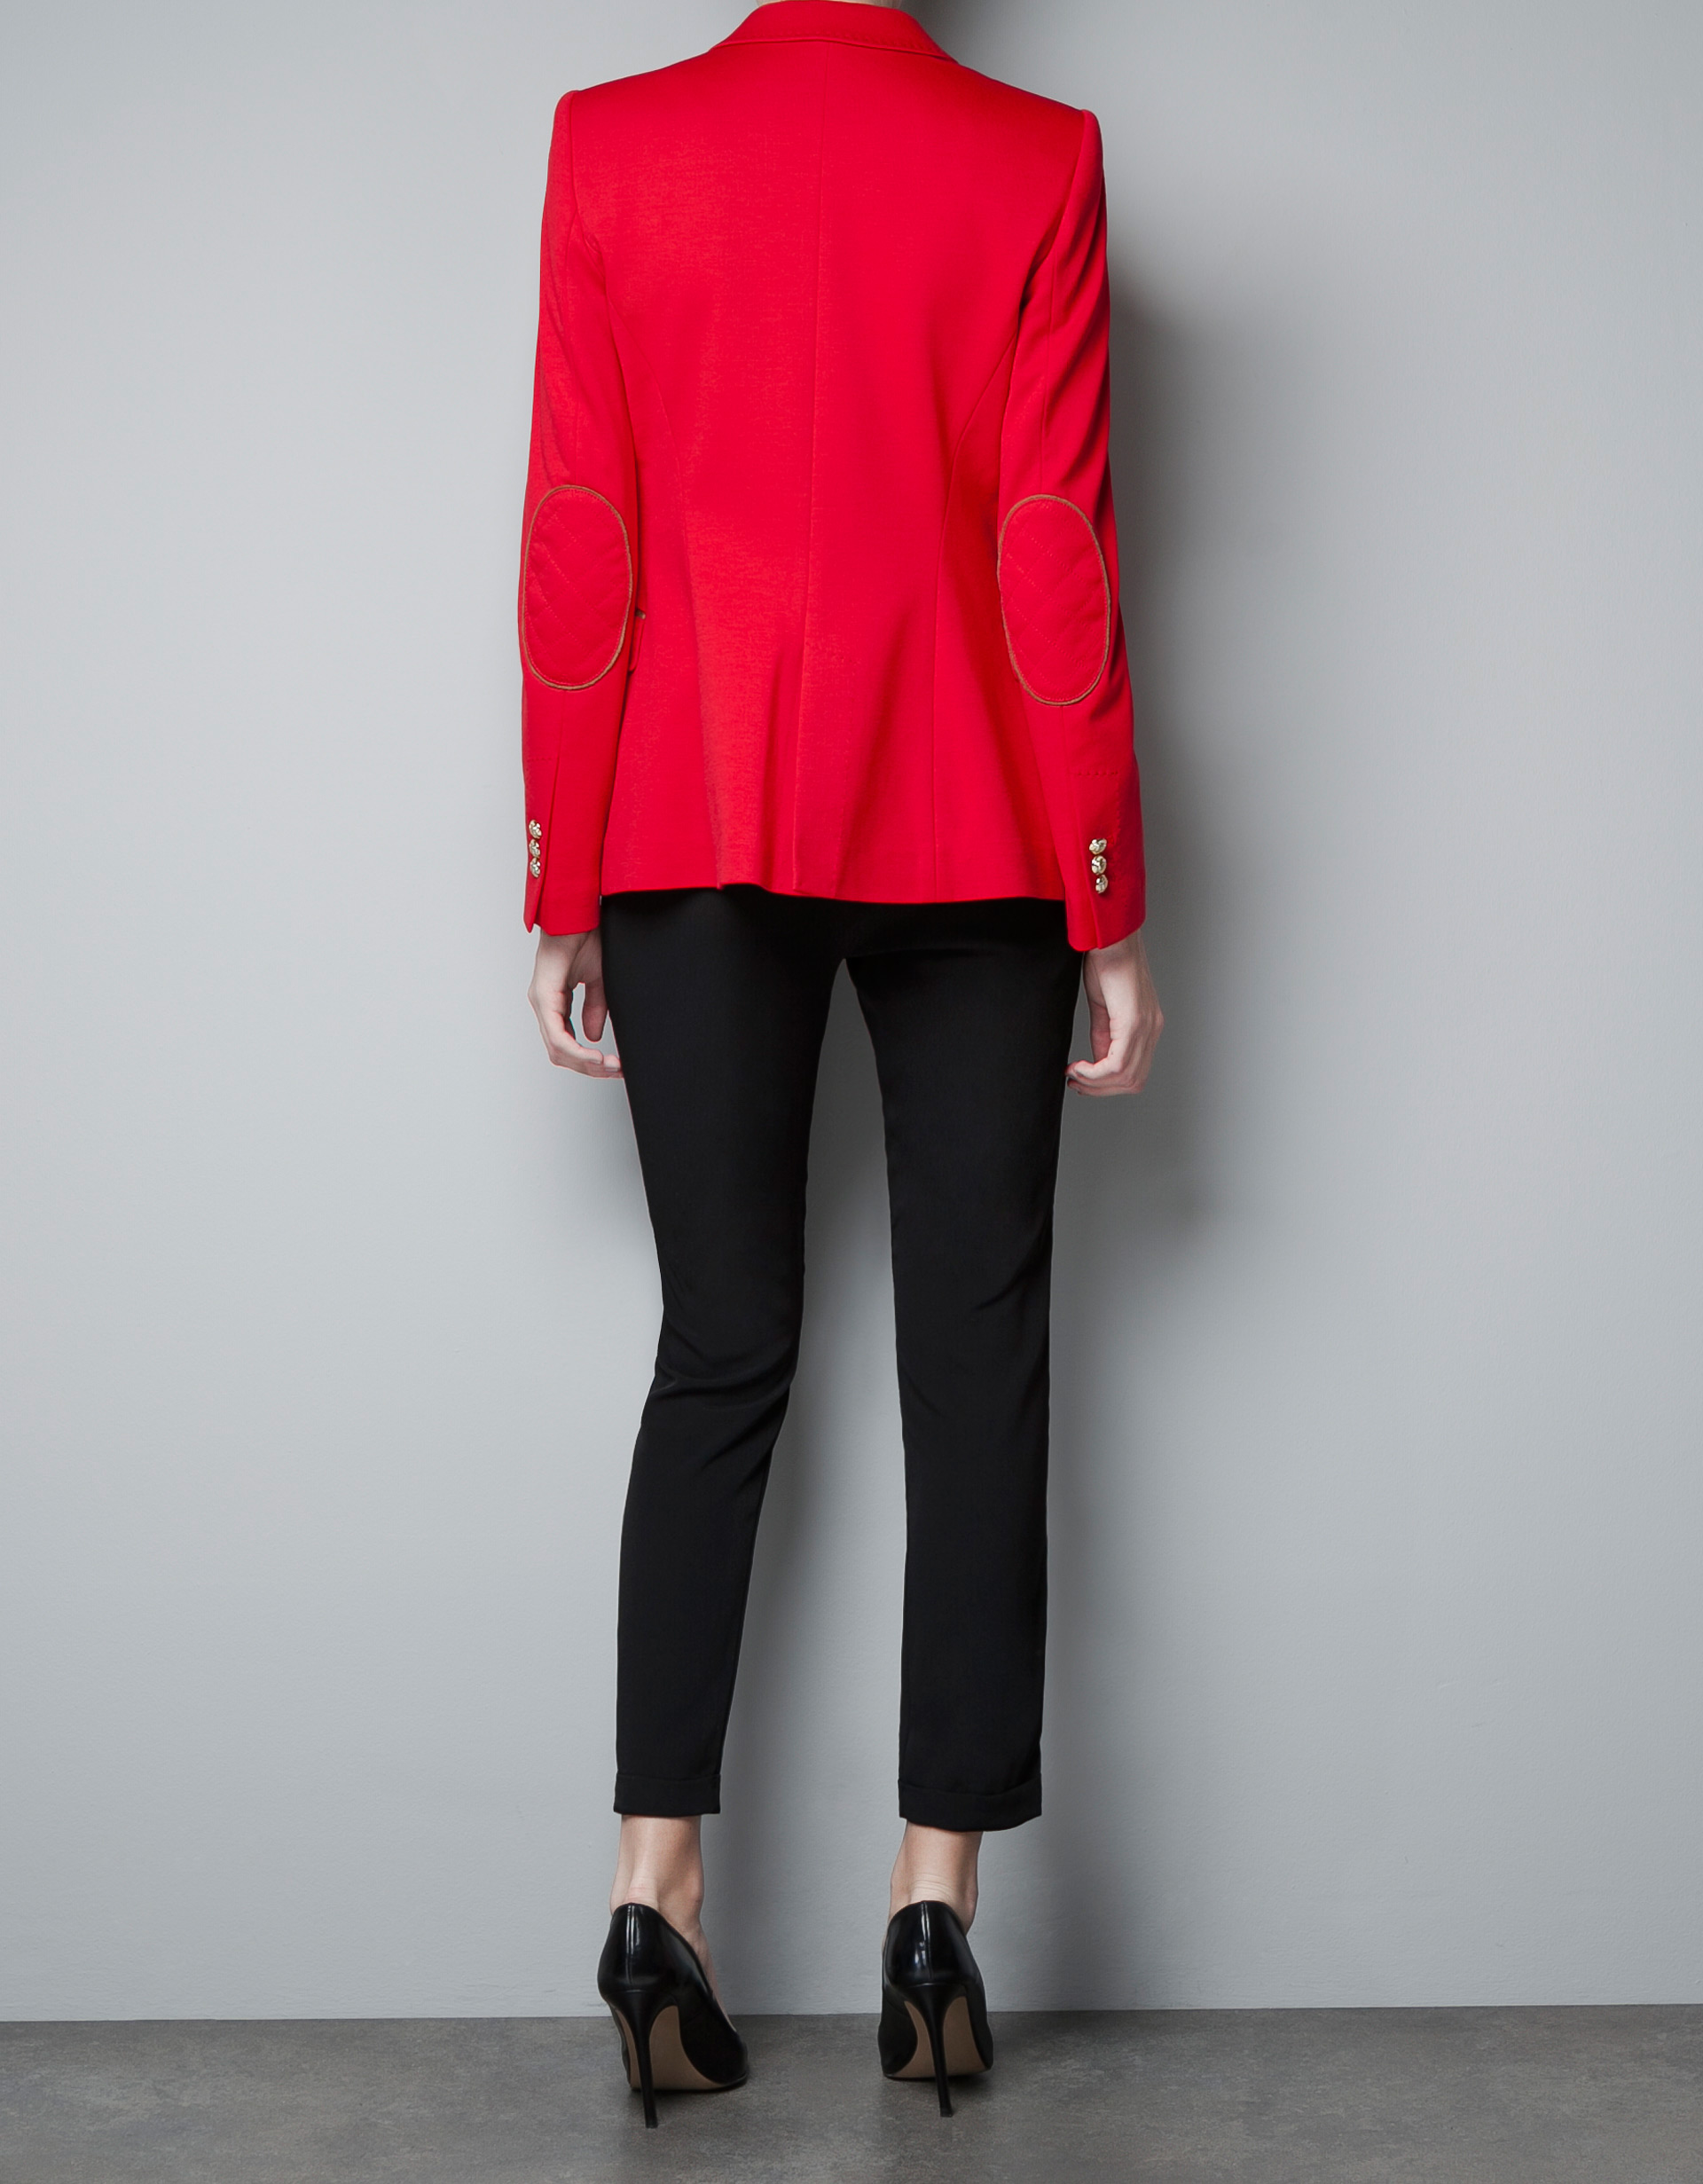 Zara Ponte Di Roma Blazer with Elbow Patches in Red | Lyst